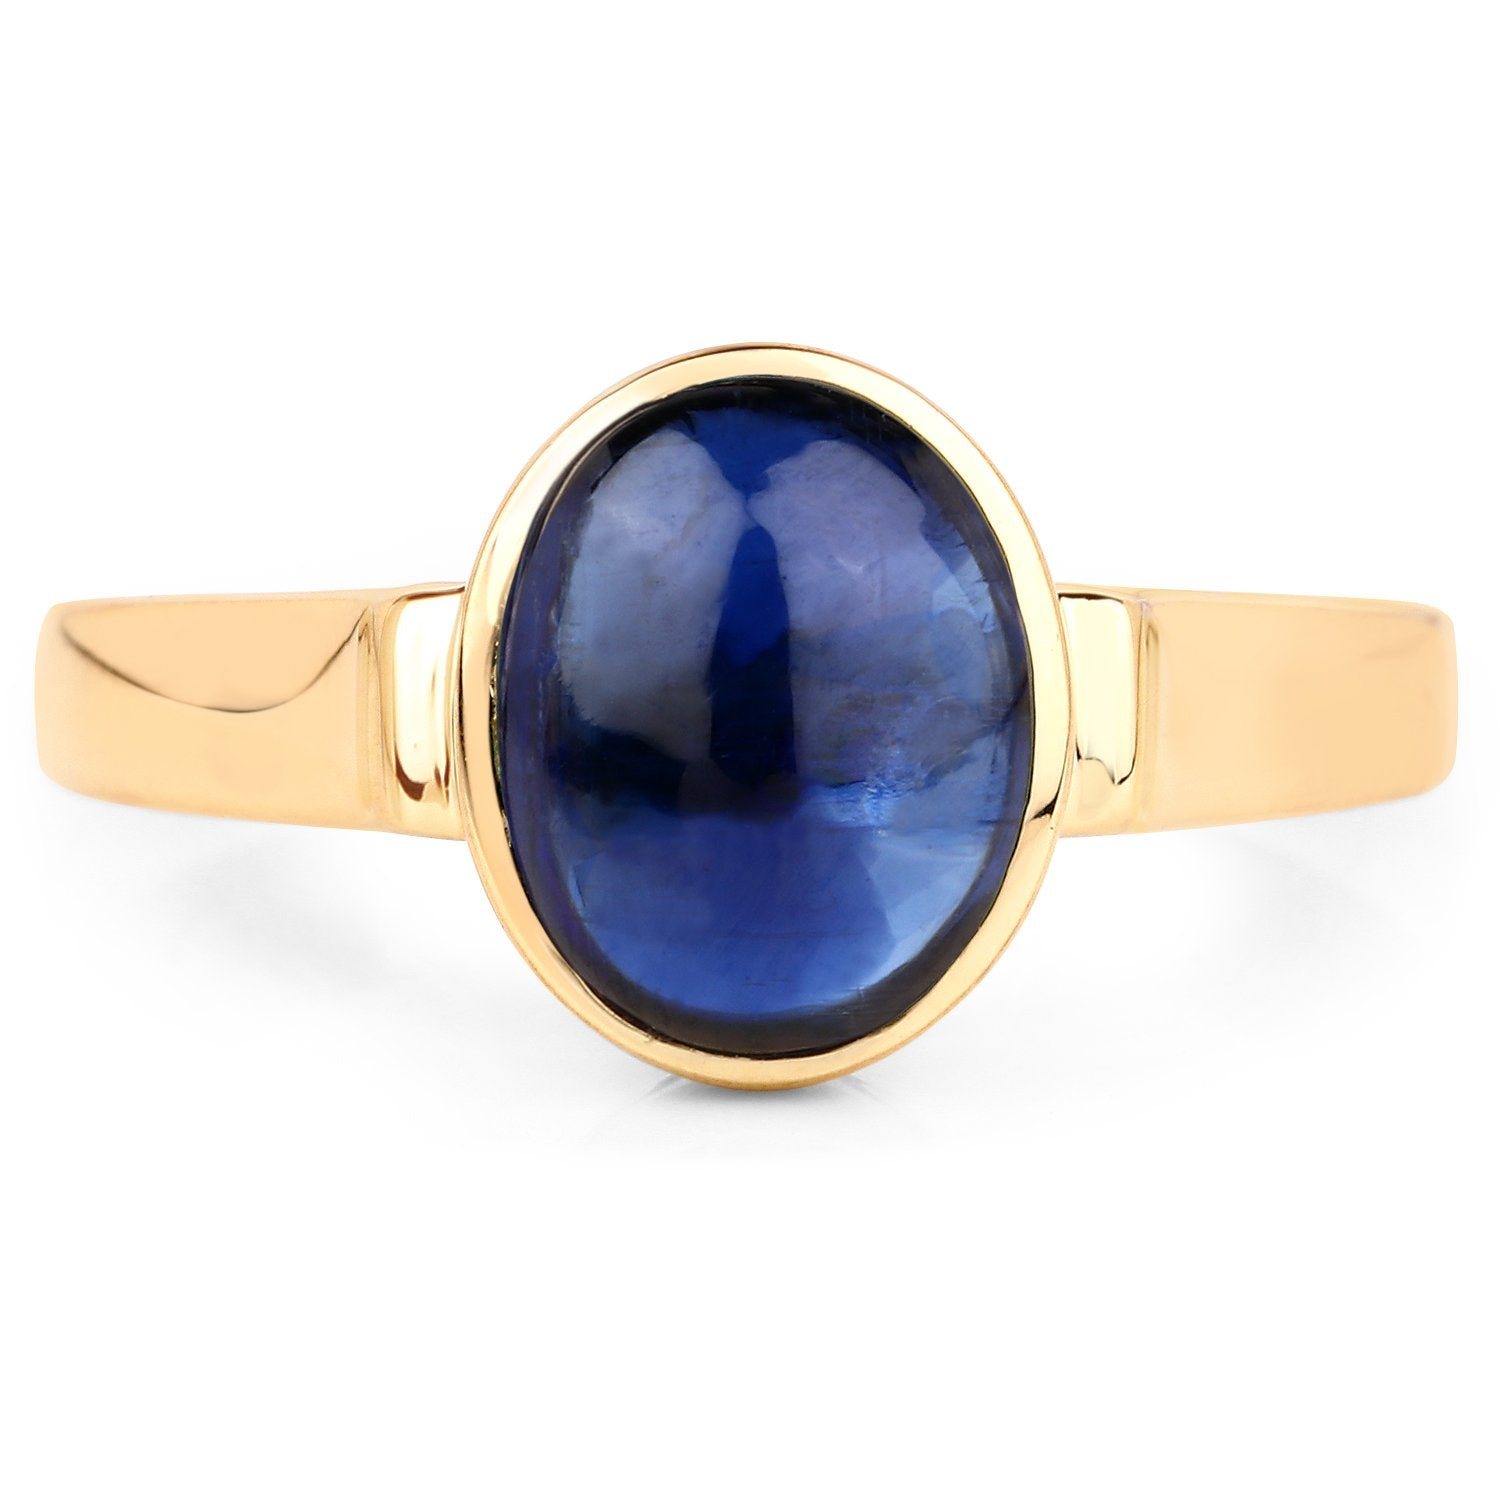 LoveHuang 2.02 Carats Genuine Kyanite Oval Statement Ring Solid .925 Sterling Silver With 18KT Yellow Gold Plating